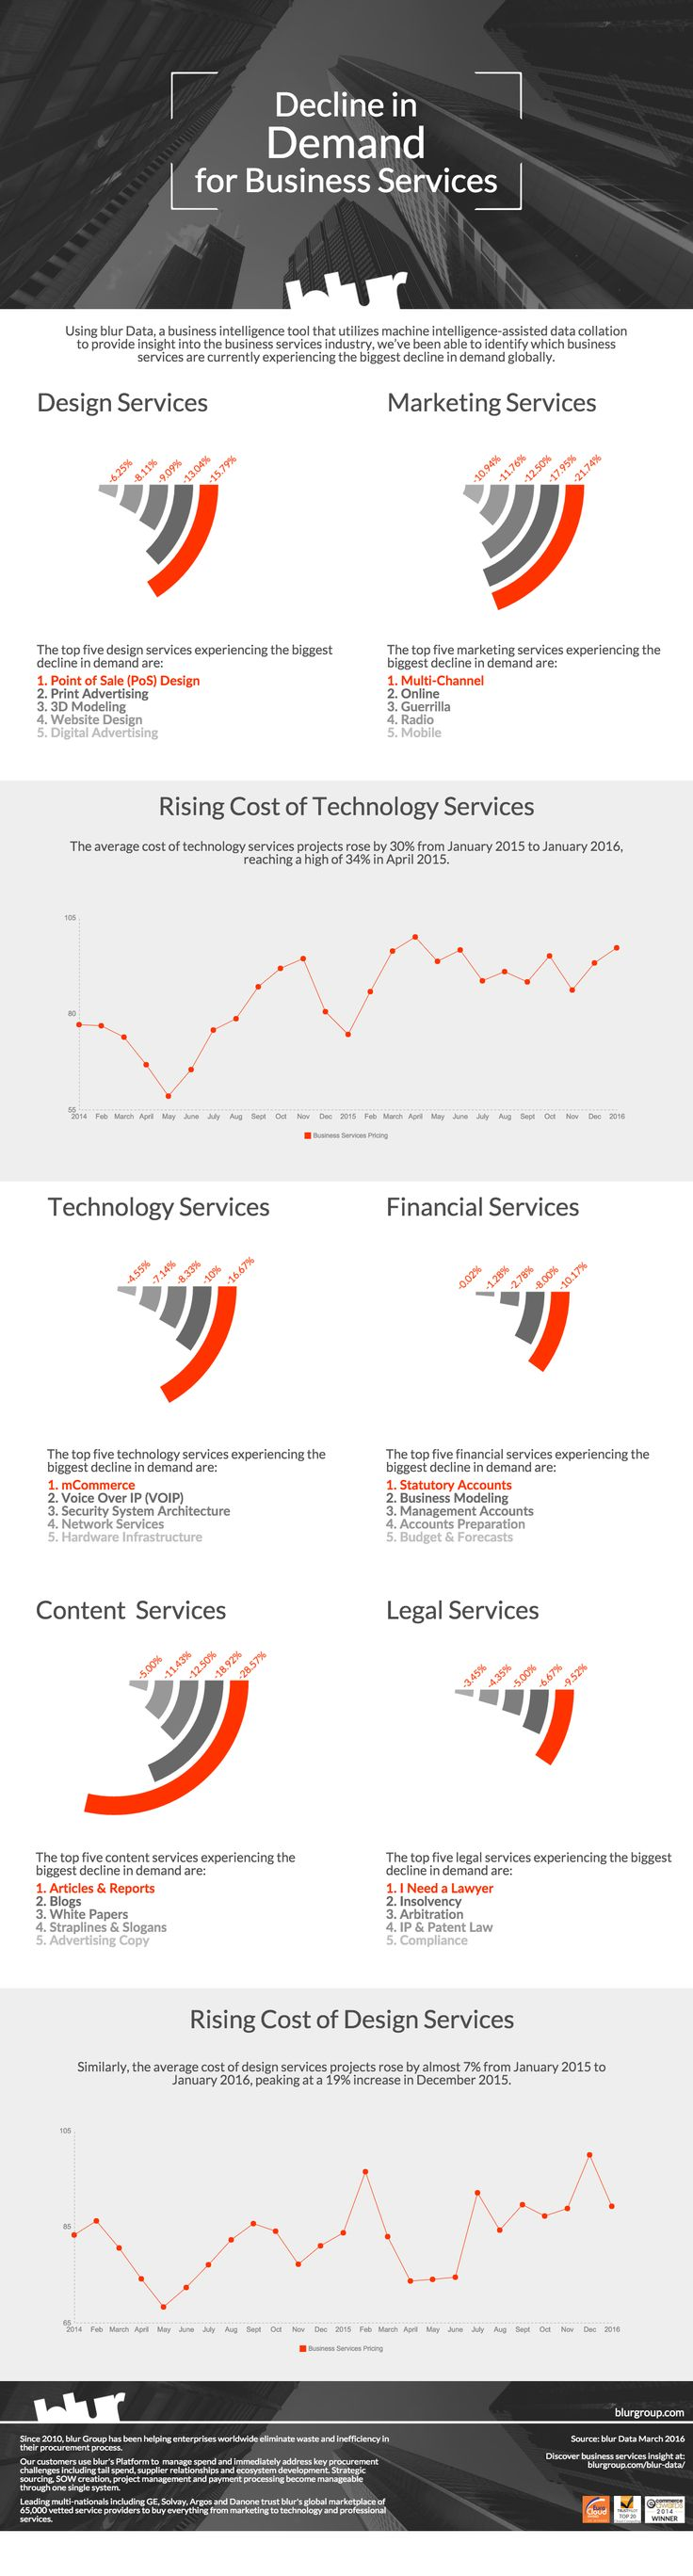 We recently used blur Data – a business intelligence tool that provides insights into the business services industry – to ascertain which business services are currently experiencing the biggest decline in demand globally. Simply click the infographic to be taken to the blog.